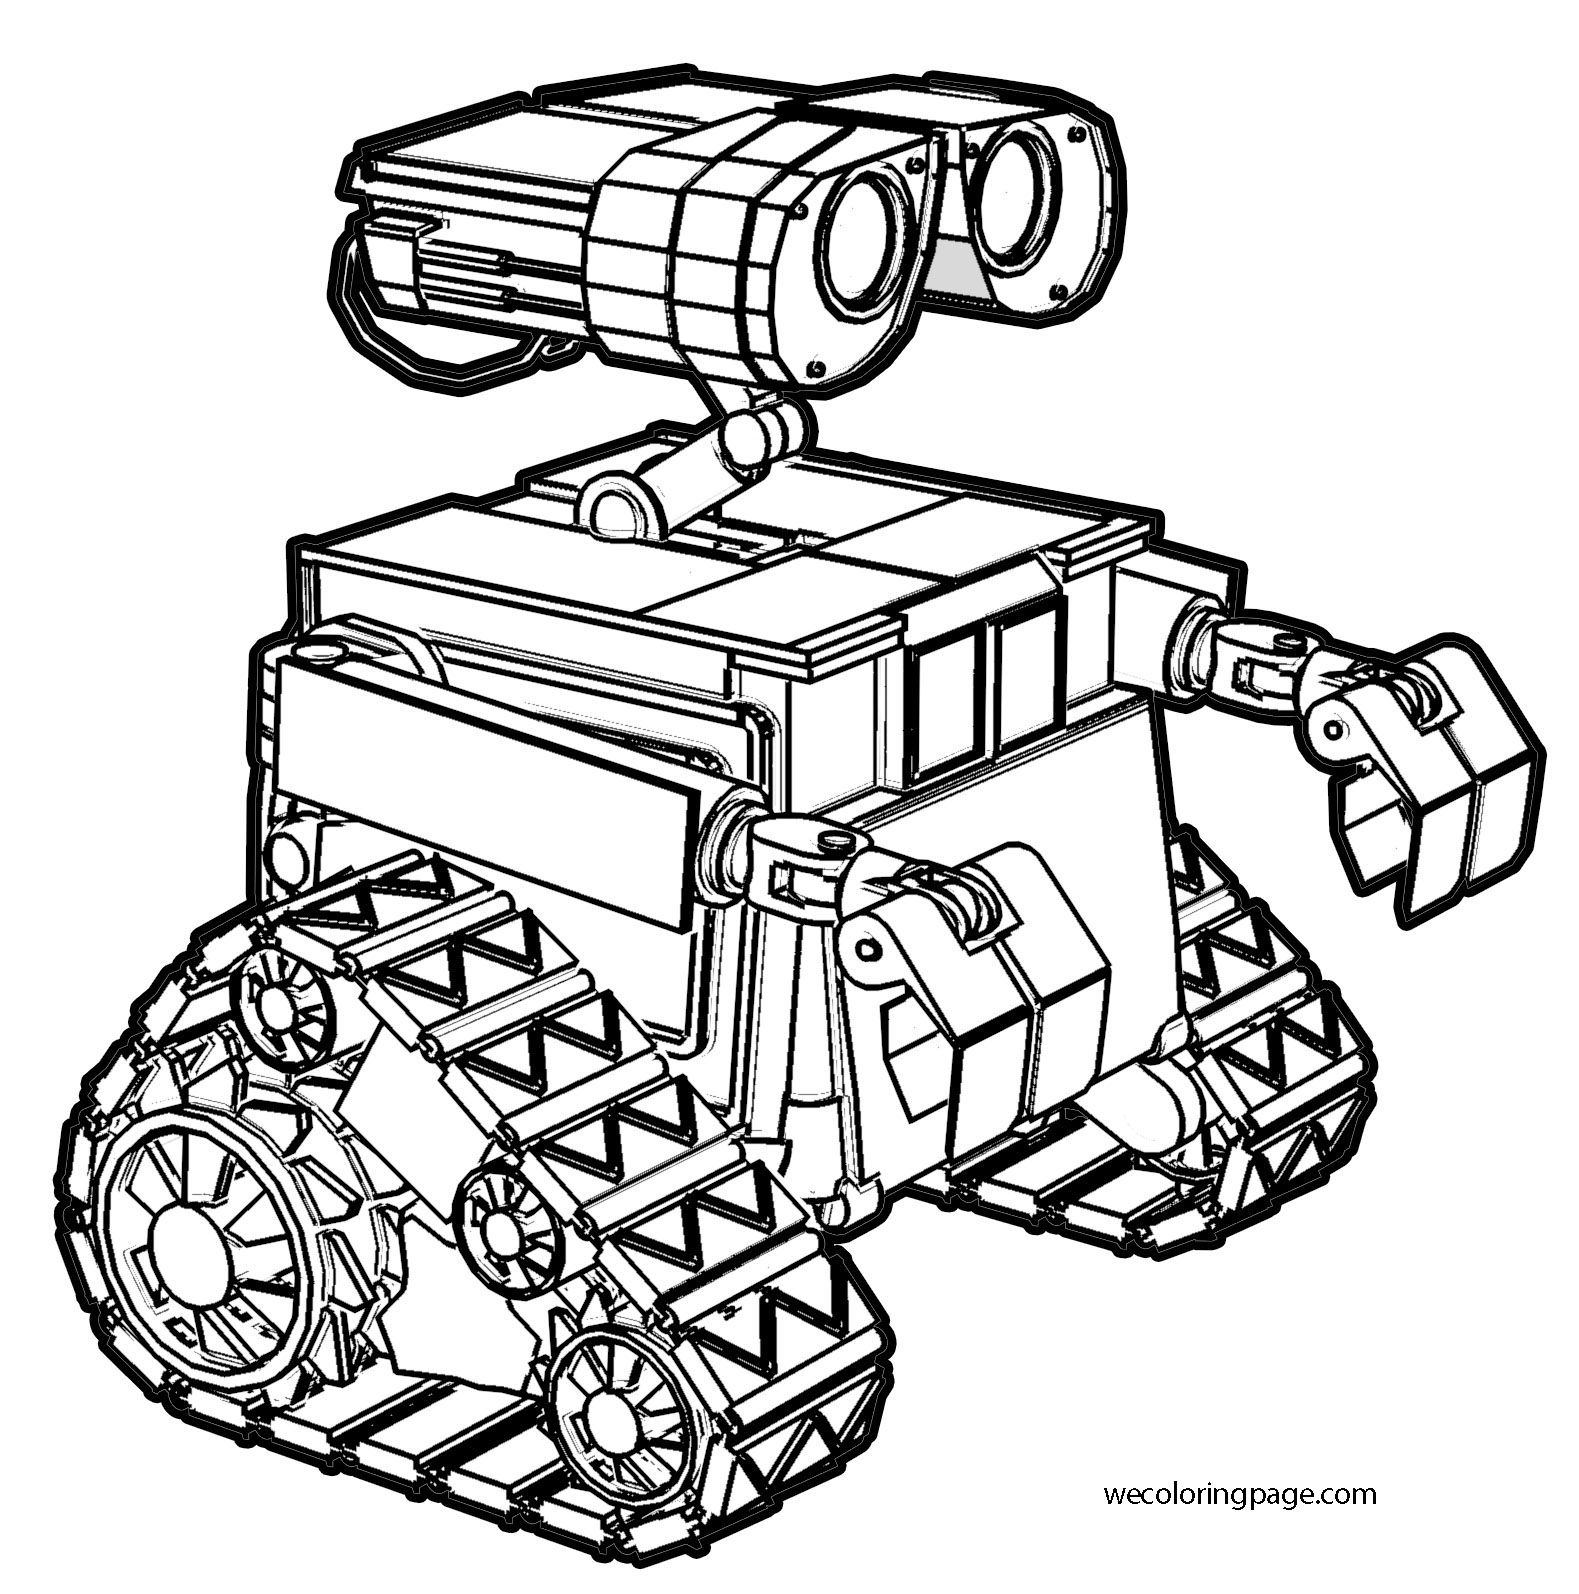 Wall E Coloring Pages Wecoloringpage Transformers Coloring Pages Coloring Pages For Kids Coloring Pages